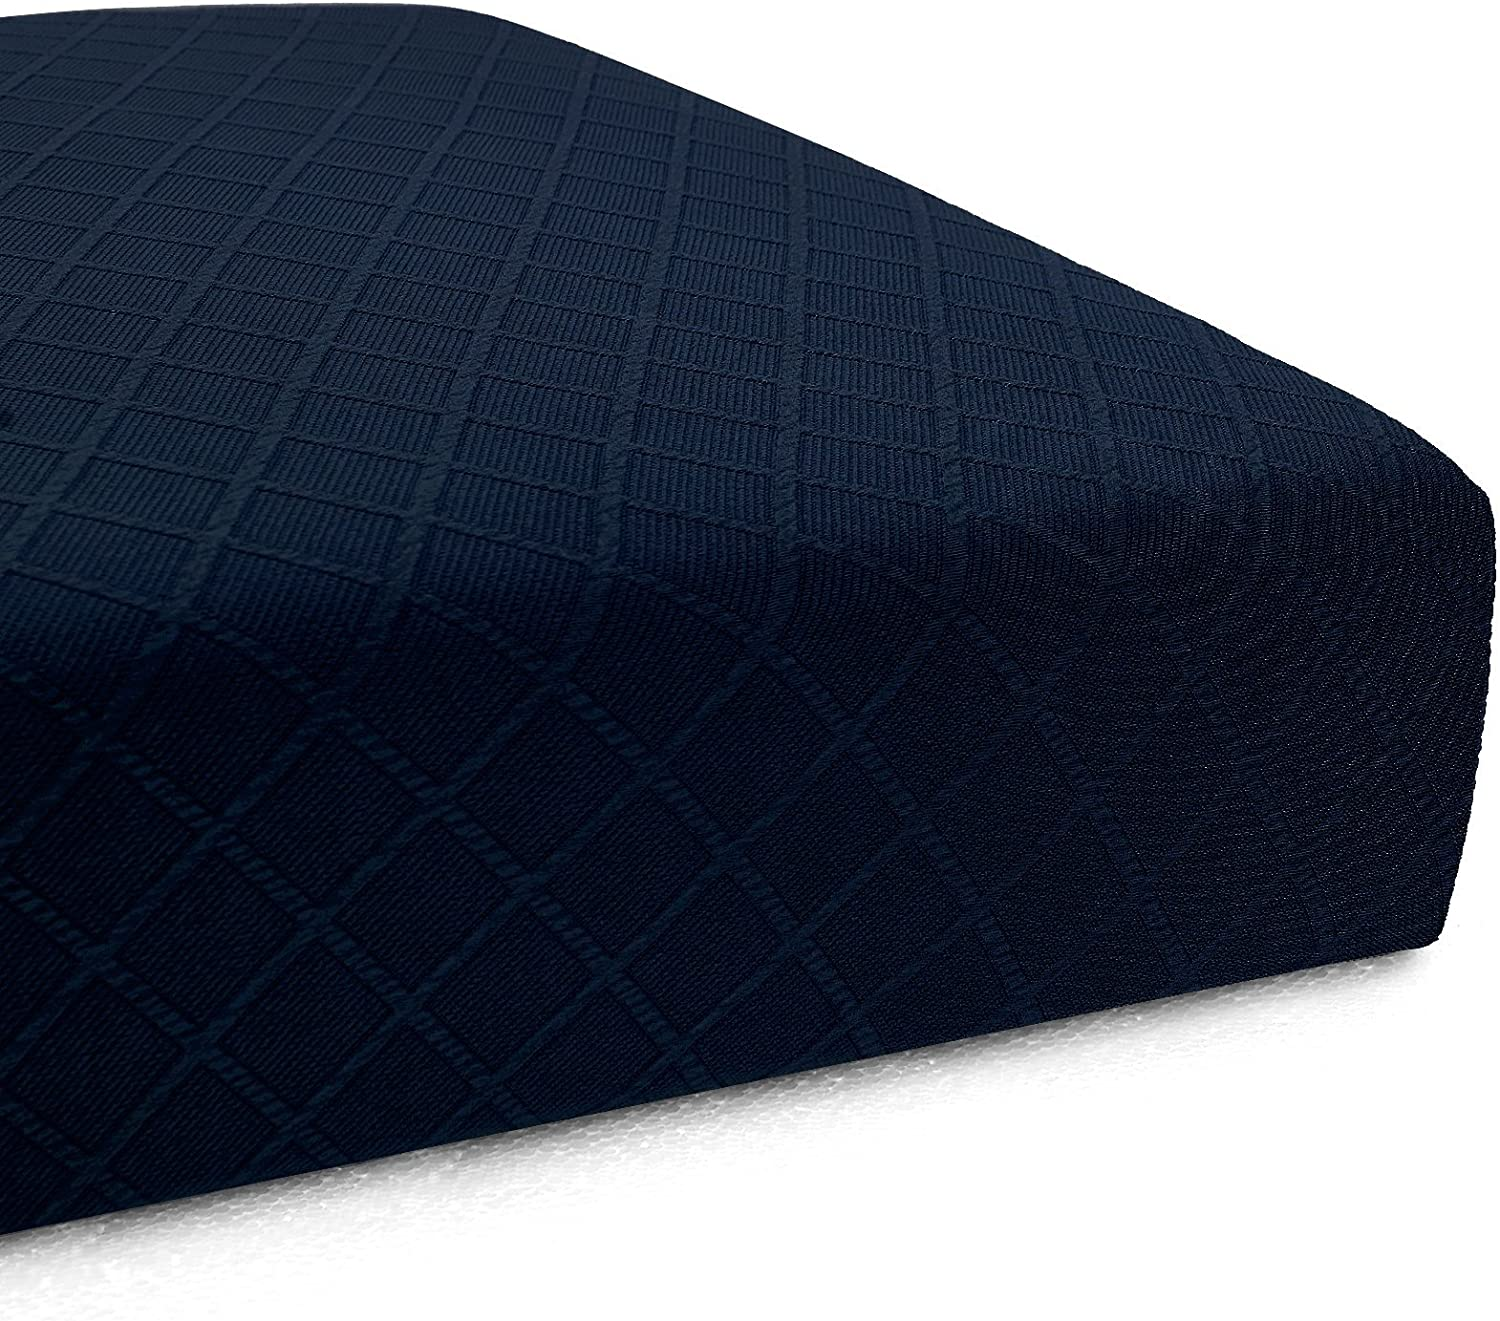 CHUN YI Stretch Polyester and Spandex Rhombus Cushion Slipcovers Multi-Purpose Couch Chair Seat Cushion Cover for 1-Seater Cushion (Dark Blue, Chair Cushion)